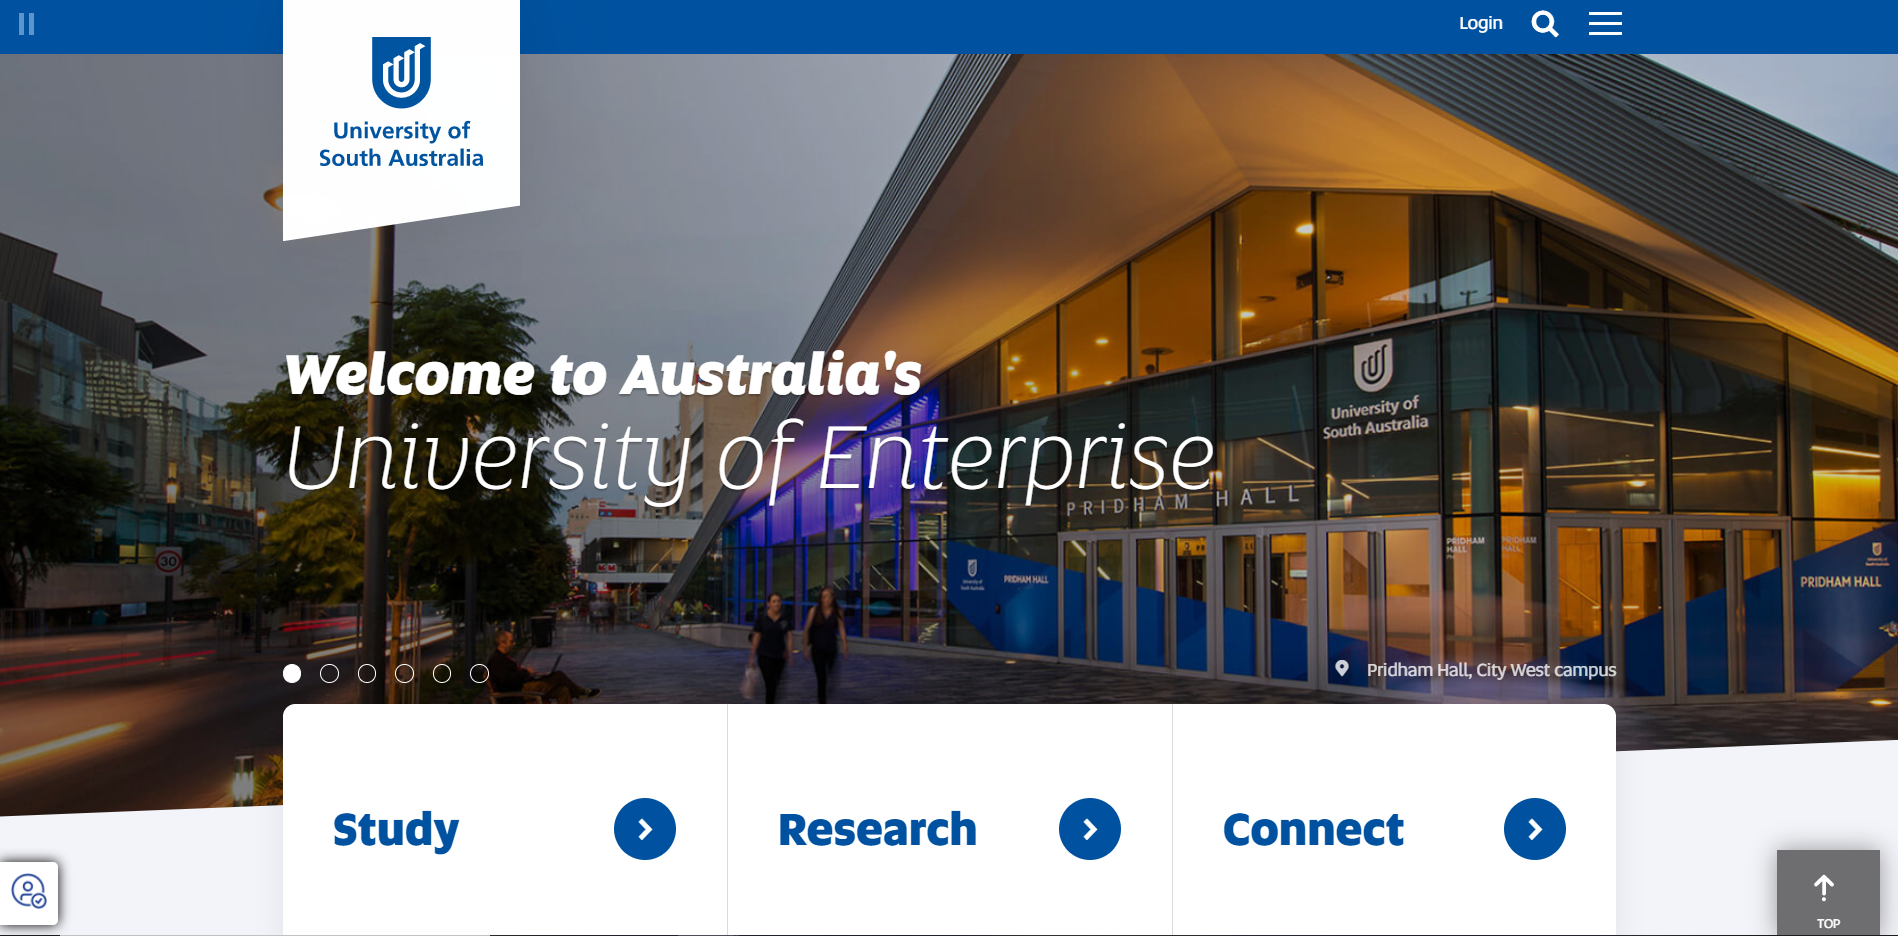 UniSA website, with menu and image of building